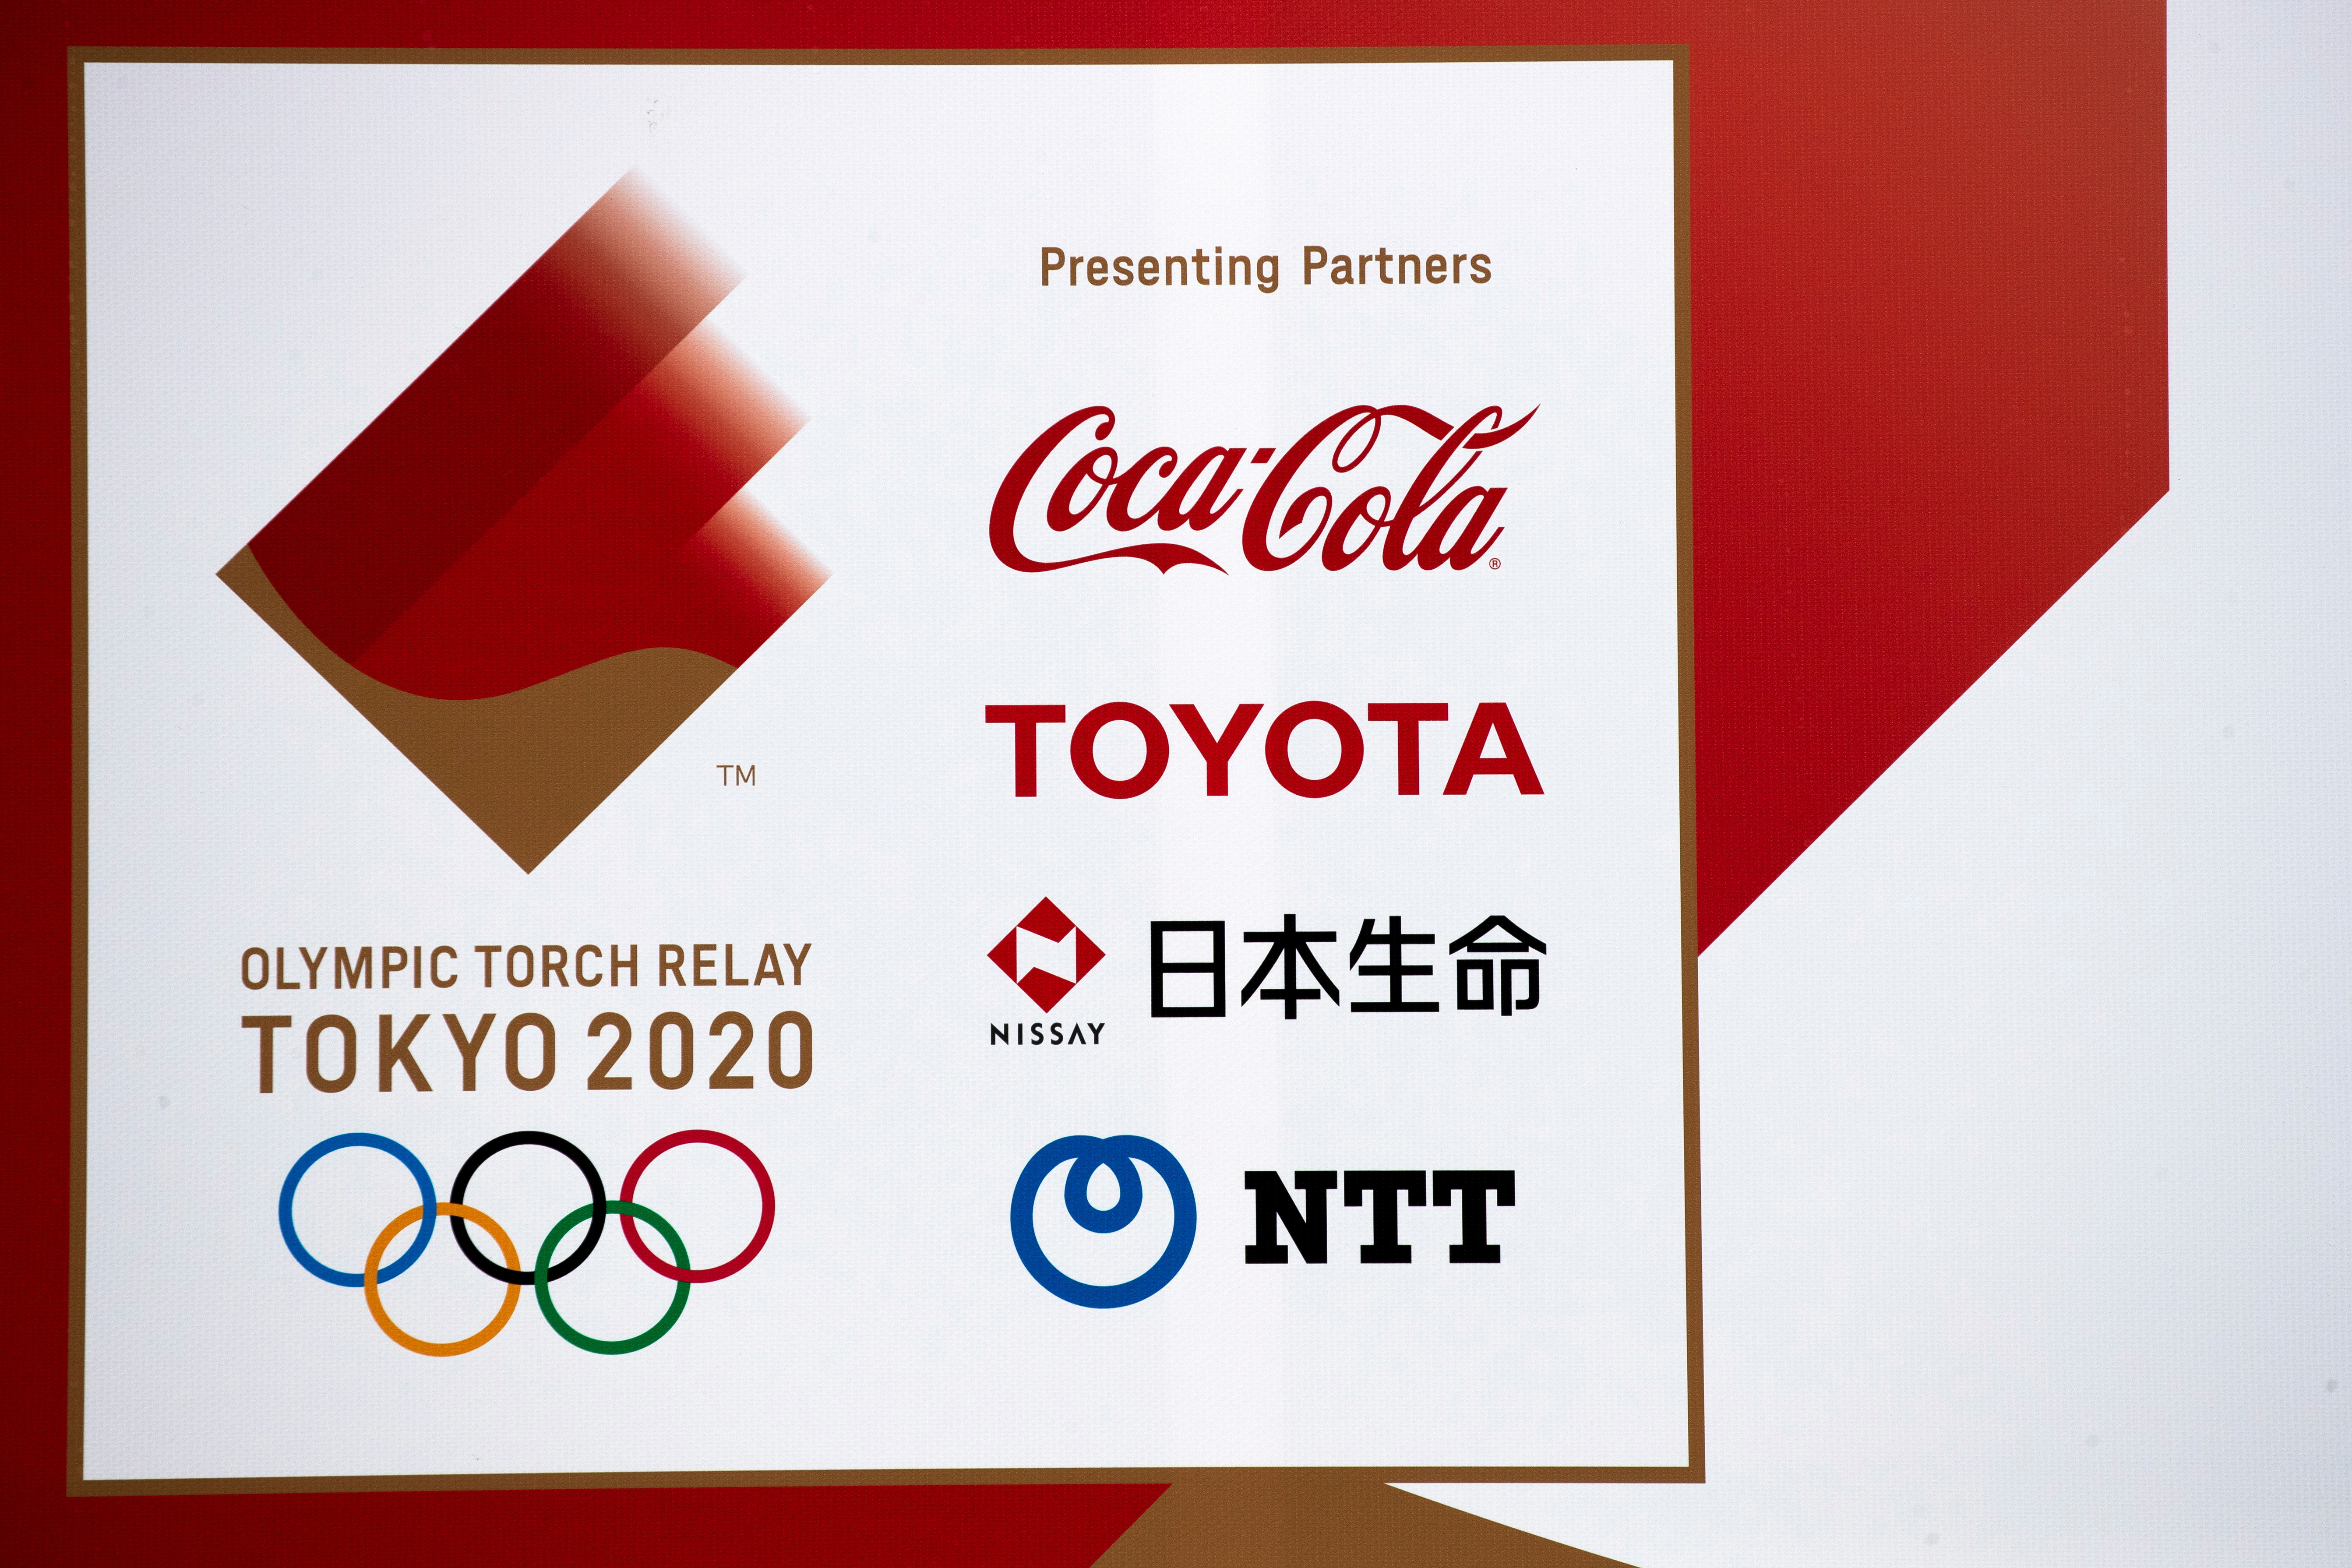 A banner advertising Coca-Cola beverages, Toyota, Nissay and NTT, Olympic Games partner for Tokyo 2020, in Fukushima prefecture, Japan March 8, 2020. Picture taken March 8, 2020. REUTERS/Athit Perawongmetha